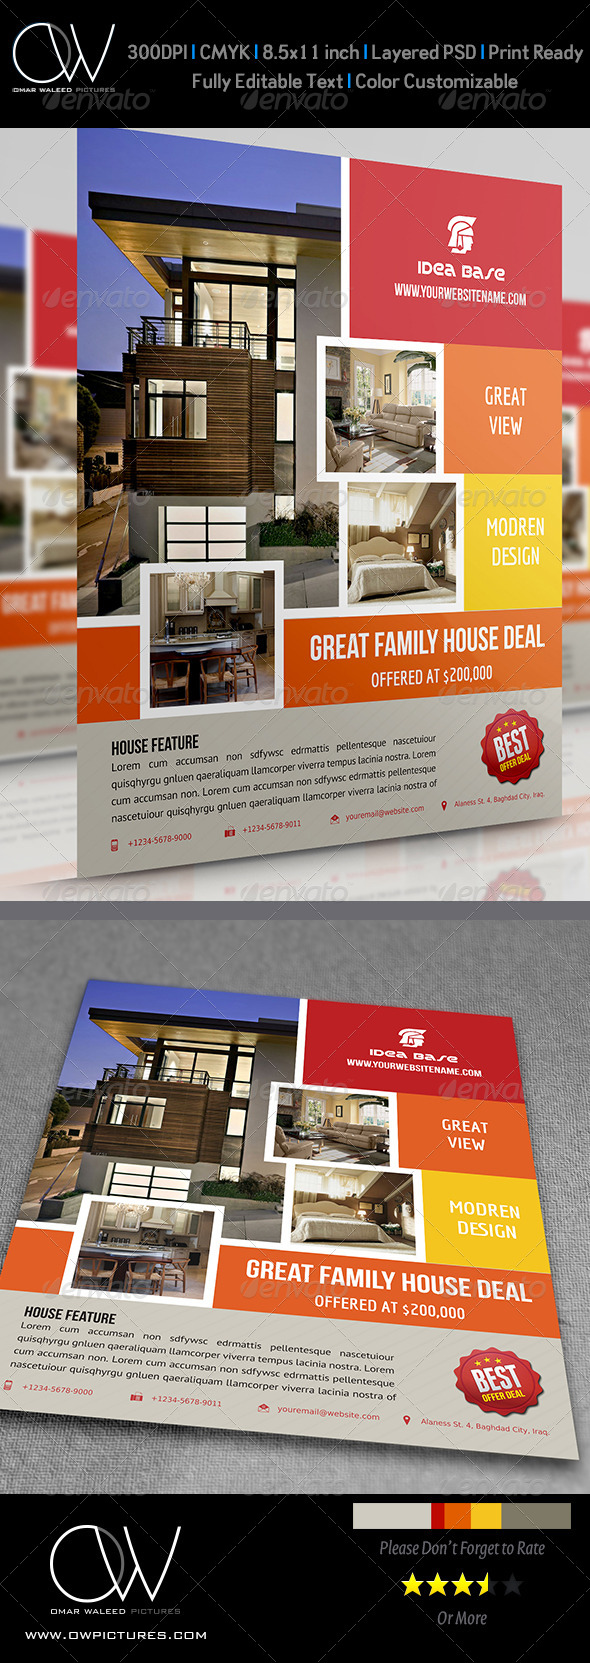 Real Estate Flyer Vol.5 - Commerce Flyers